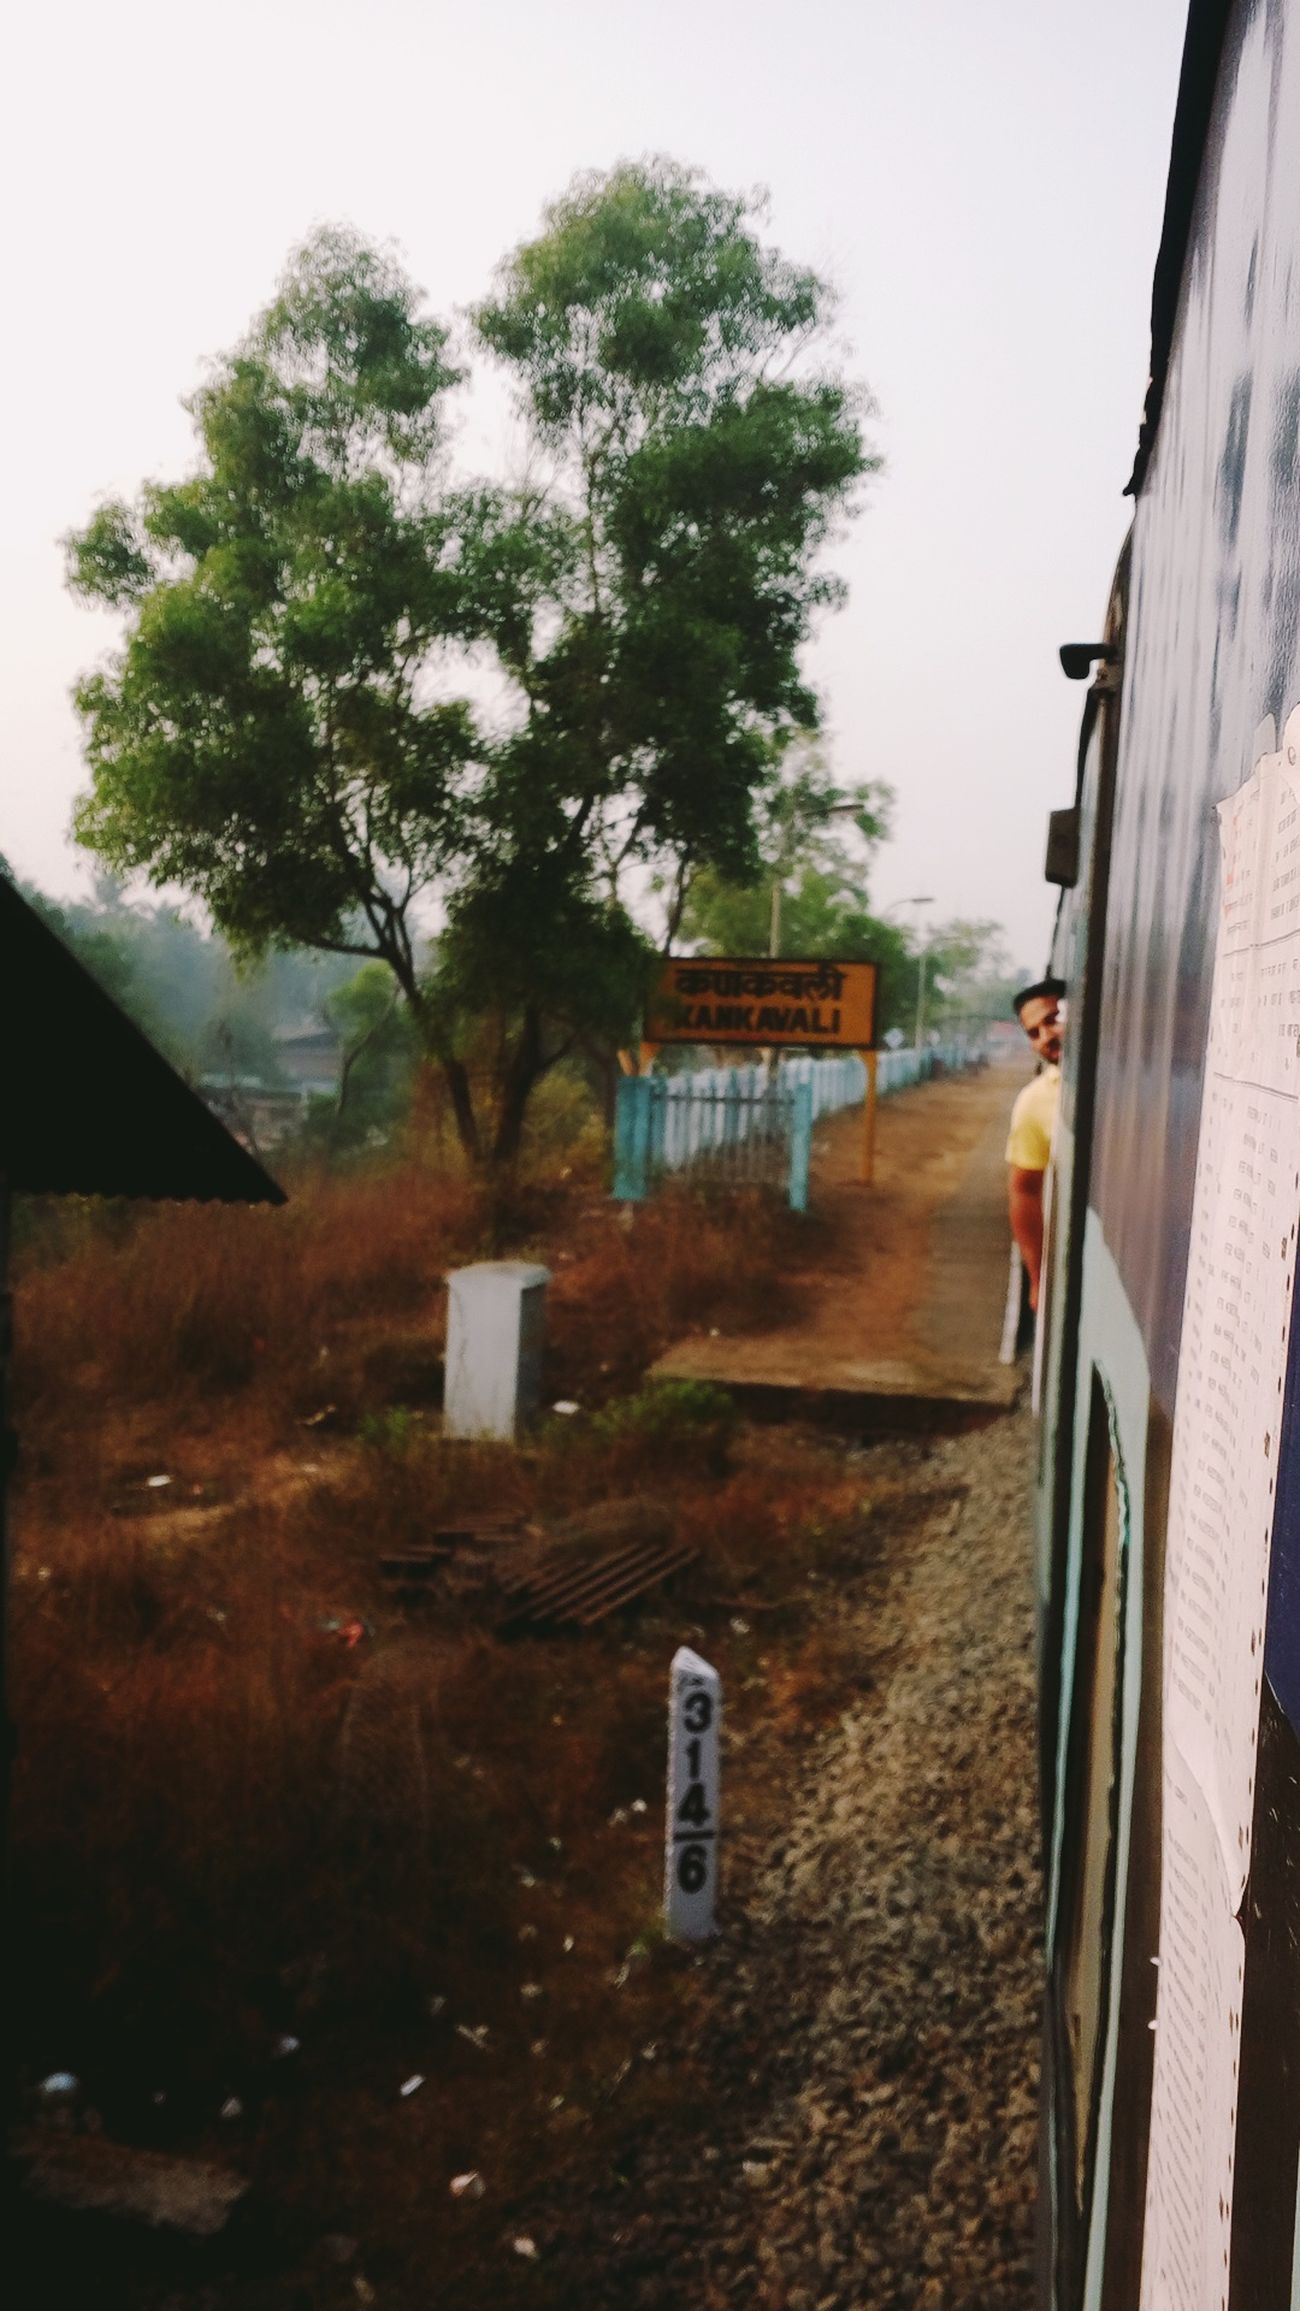 Indianrailways Konkanrailways Konkandiaries Rail Transportation Departing Tree Outdoors Netravatiexpress